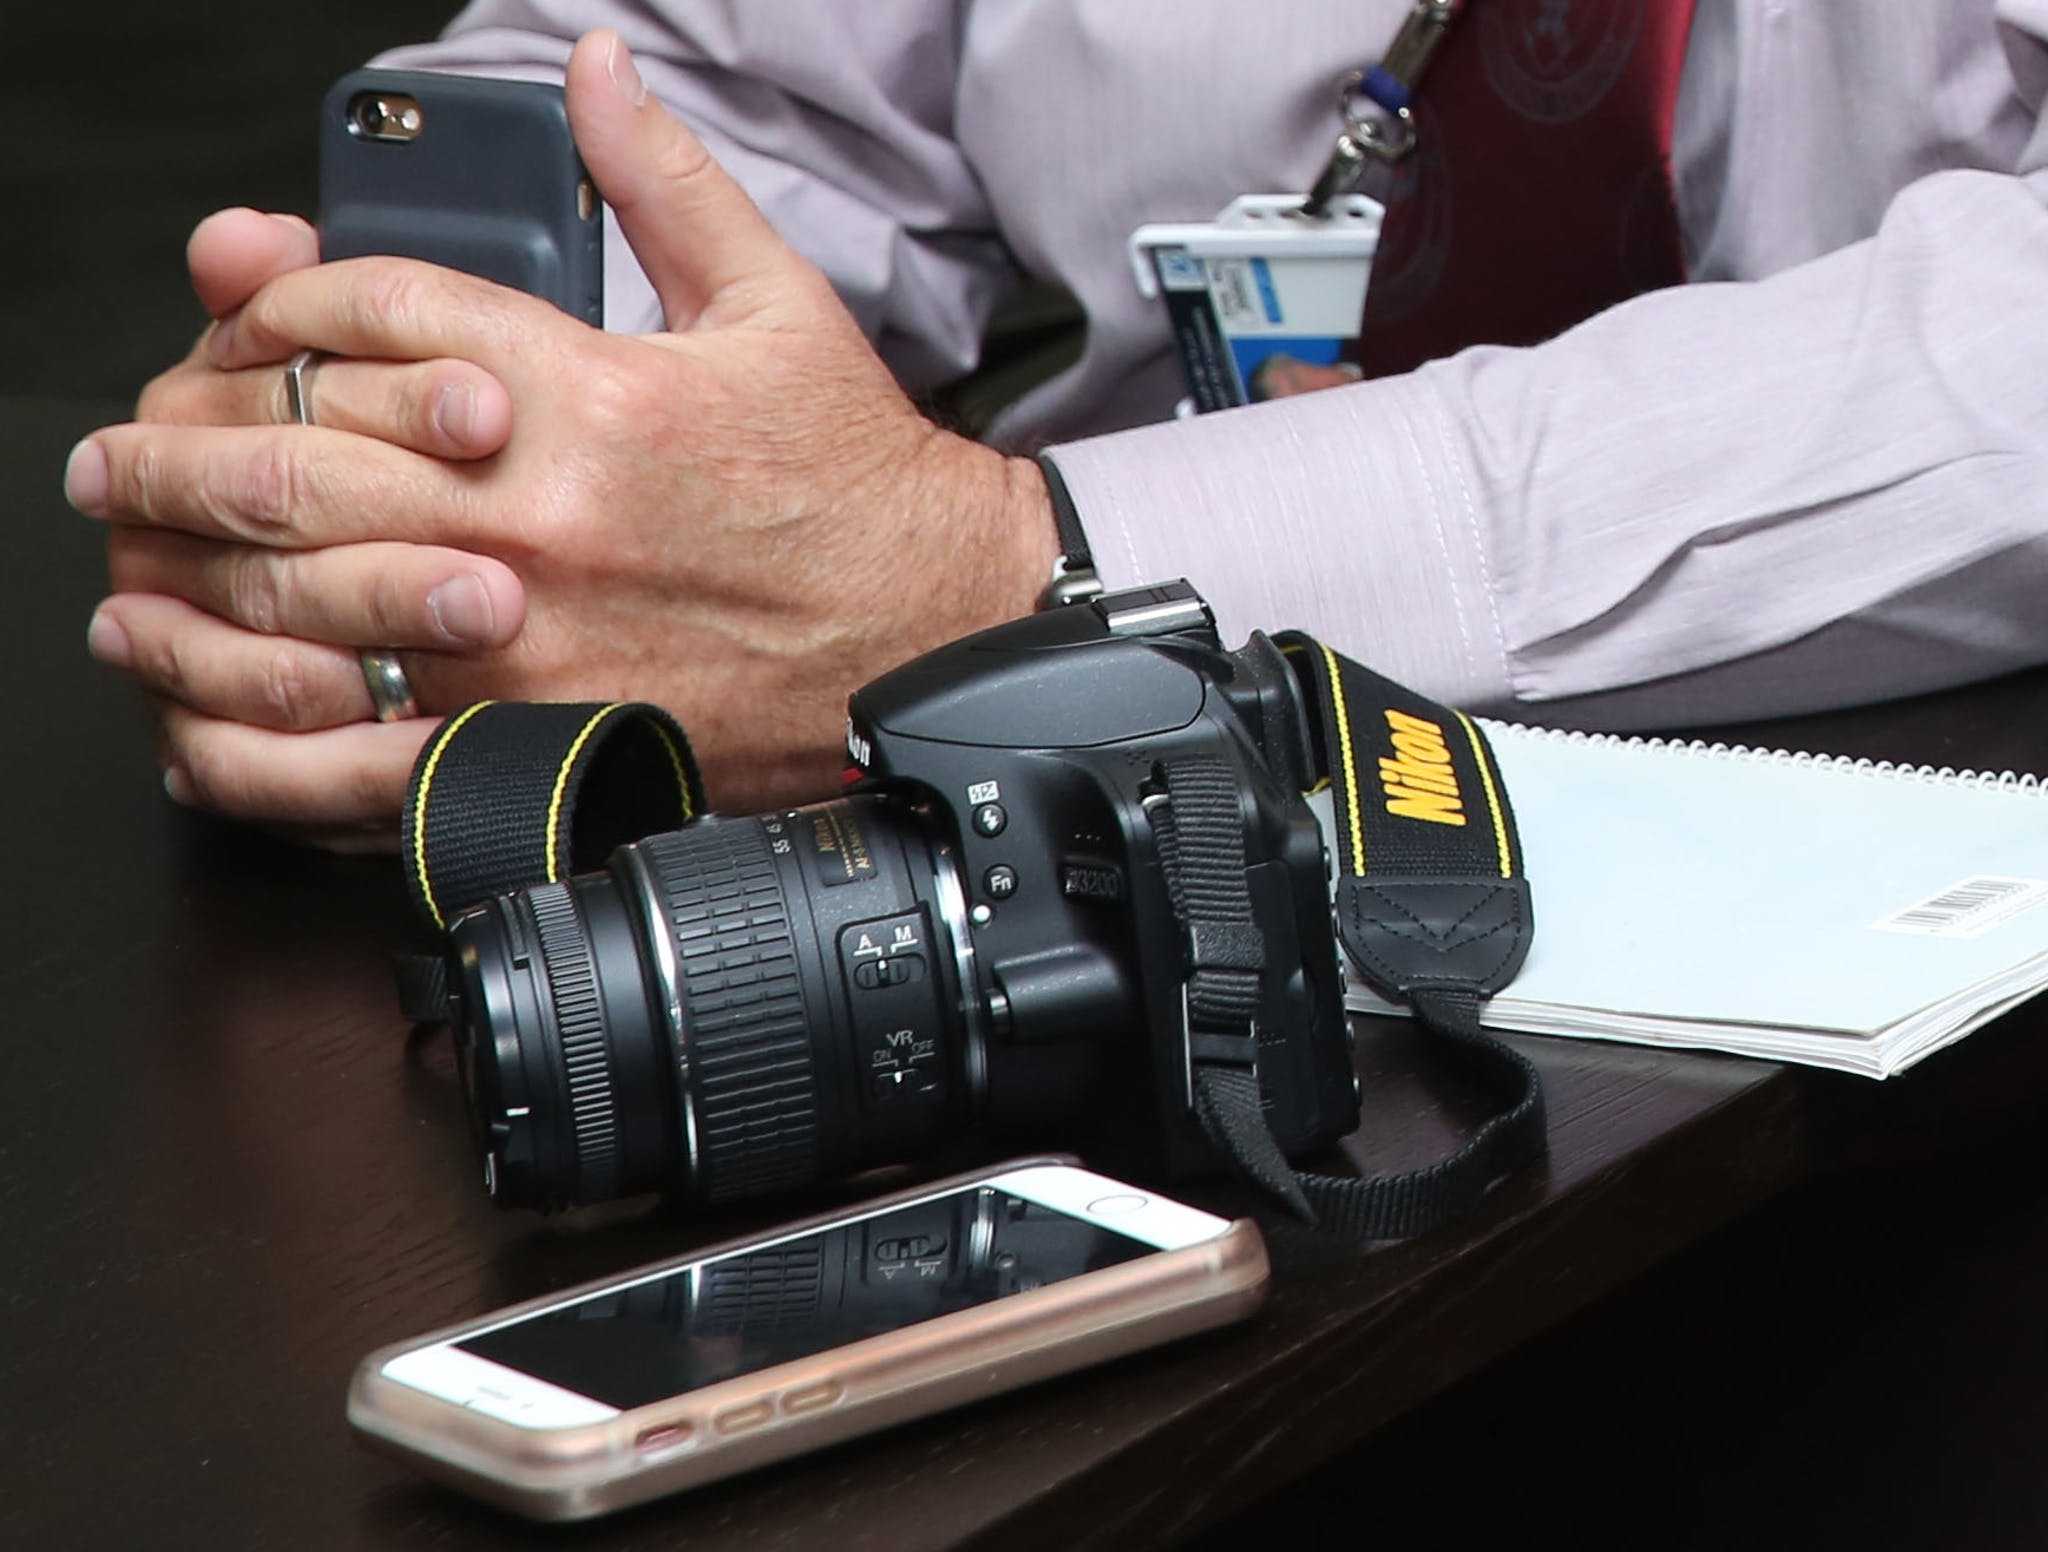 Black Nikon Dslr Camera Beside Person's Hands